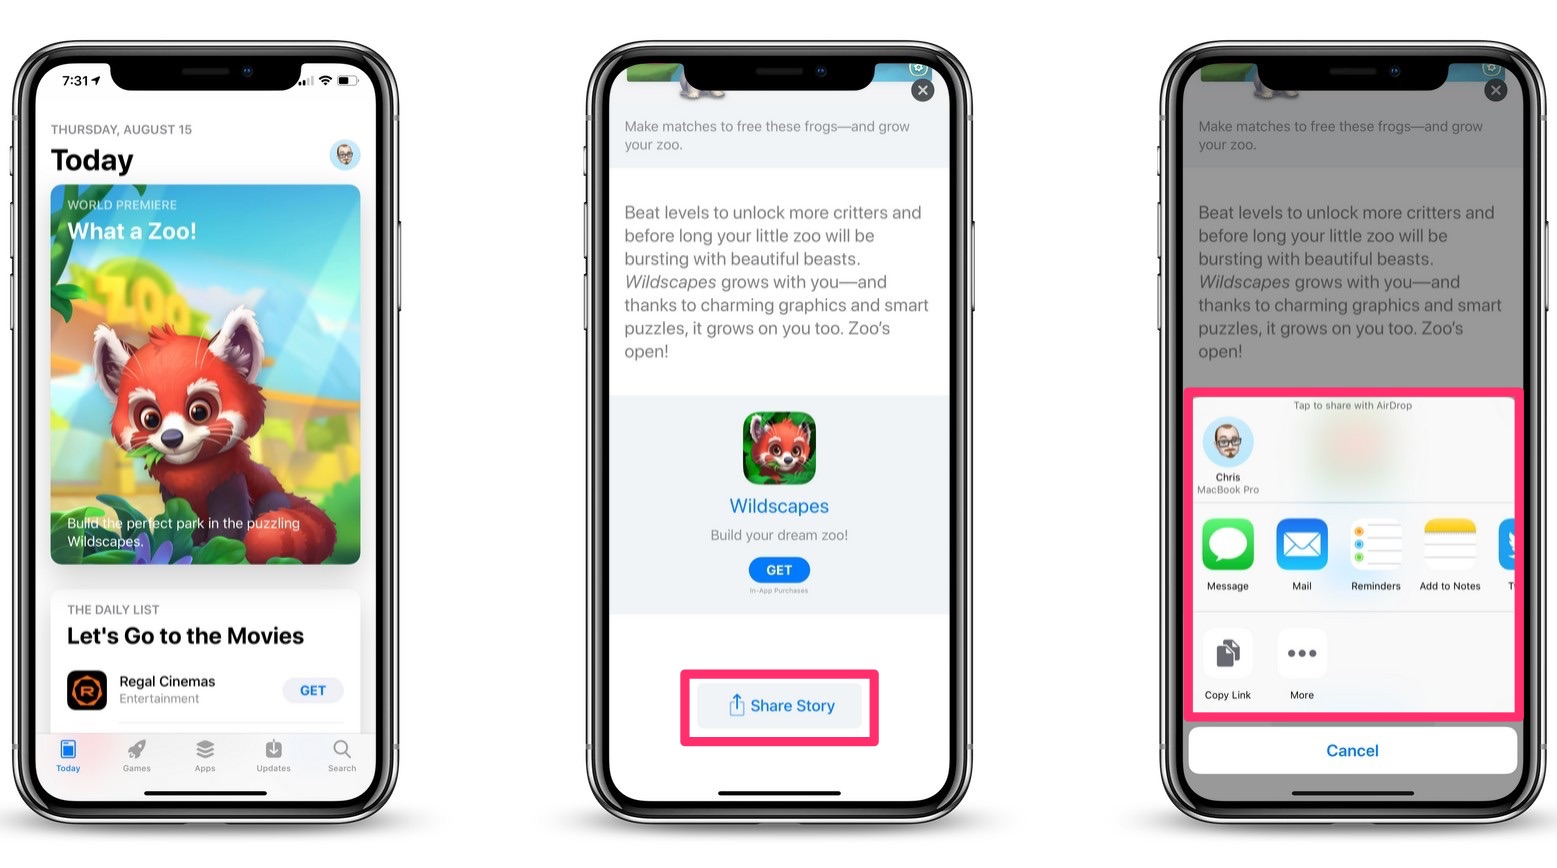 Apple's App Store Today Stories Now Available on the Web in Its Full Glory